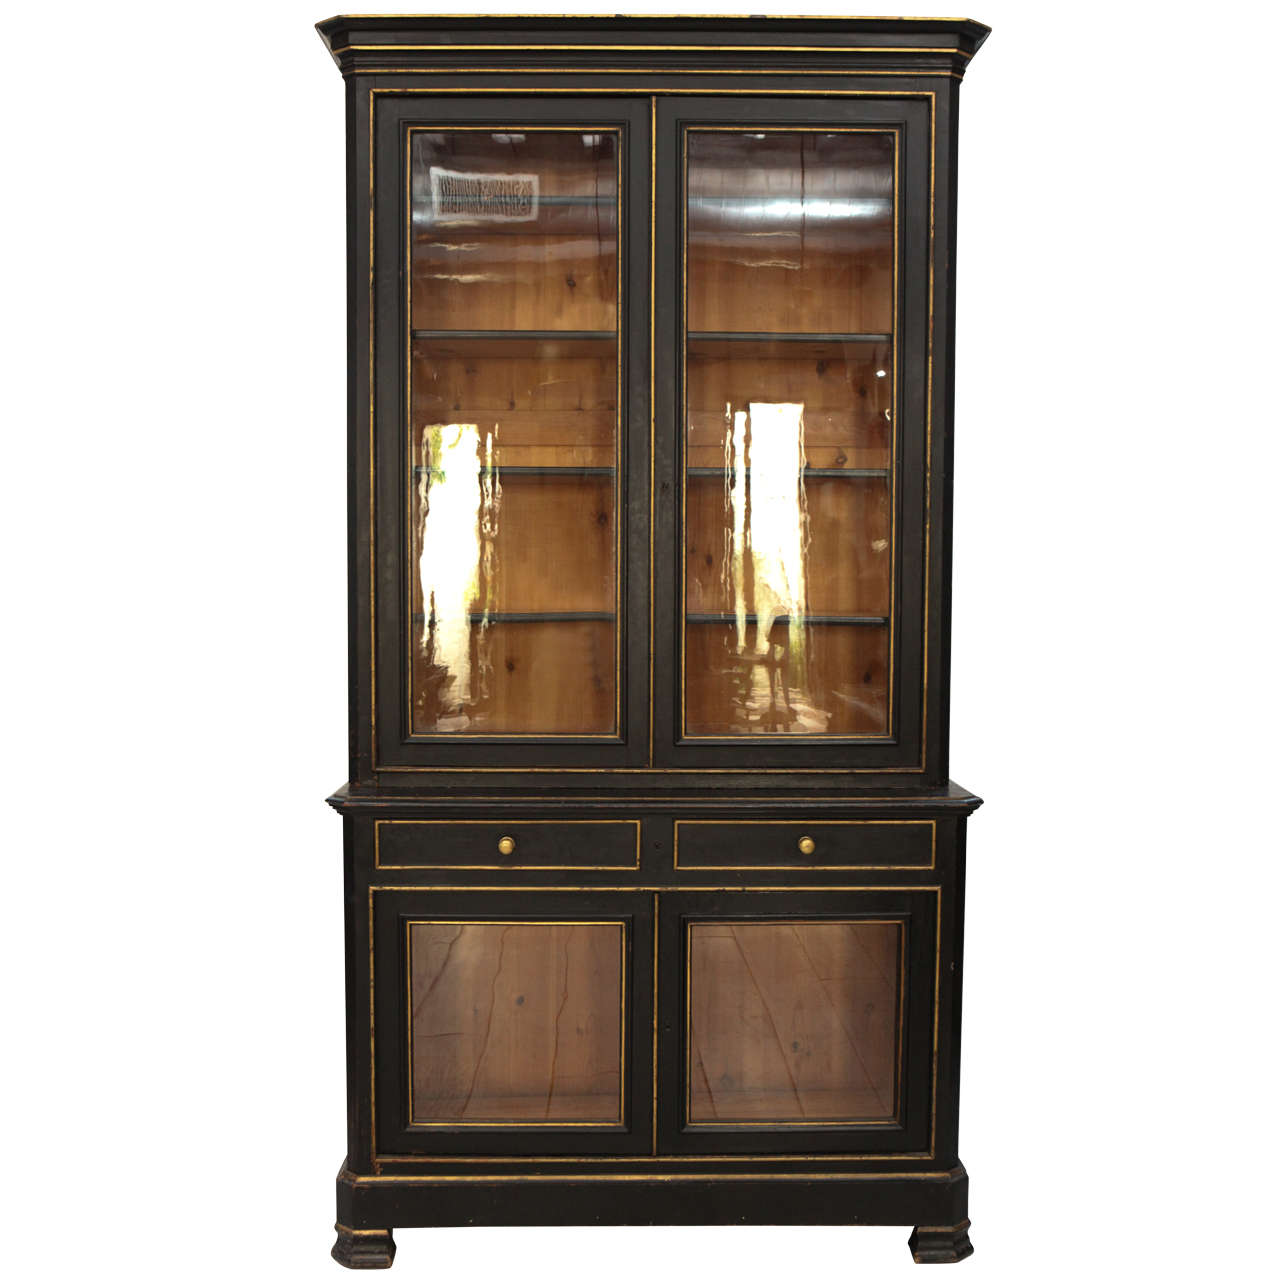 Very best Tall China Cabinet Solving Storage Issues | HomesFeed CH55